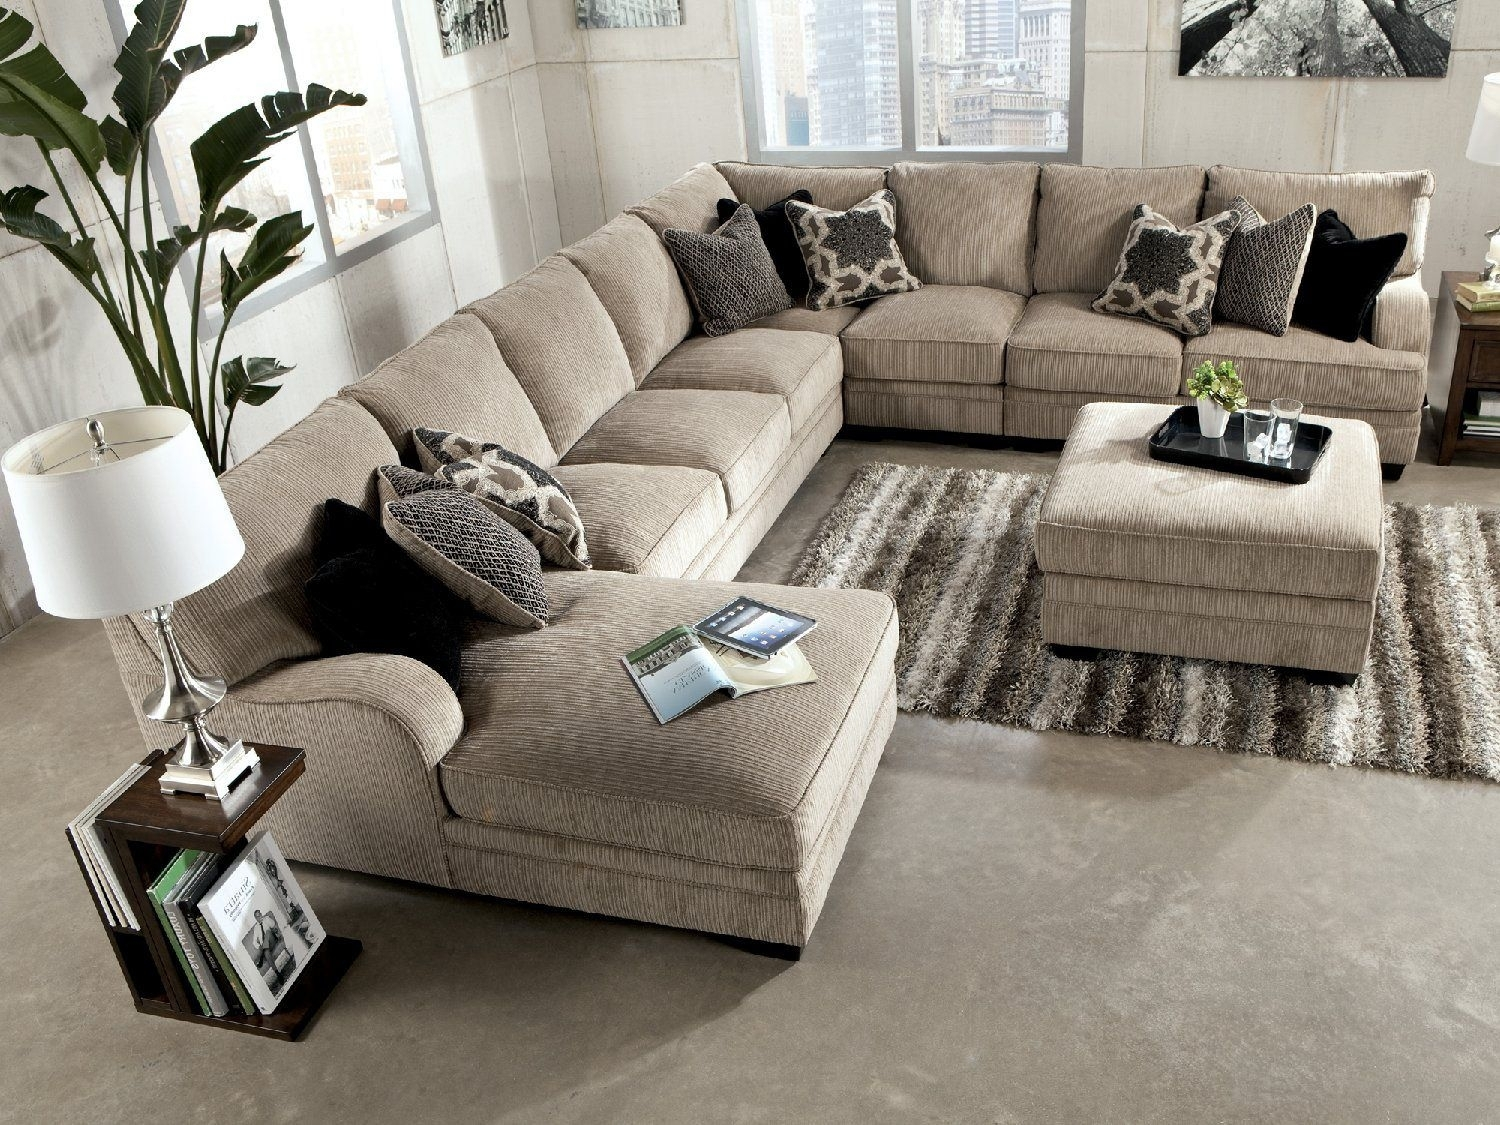 Tisha 6 Piece Sectional Package Including Storage Ottoman | Hom Throughout Jackson Ms Sectional Sofas (View 3 of 10)